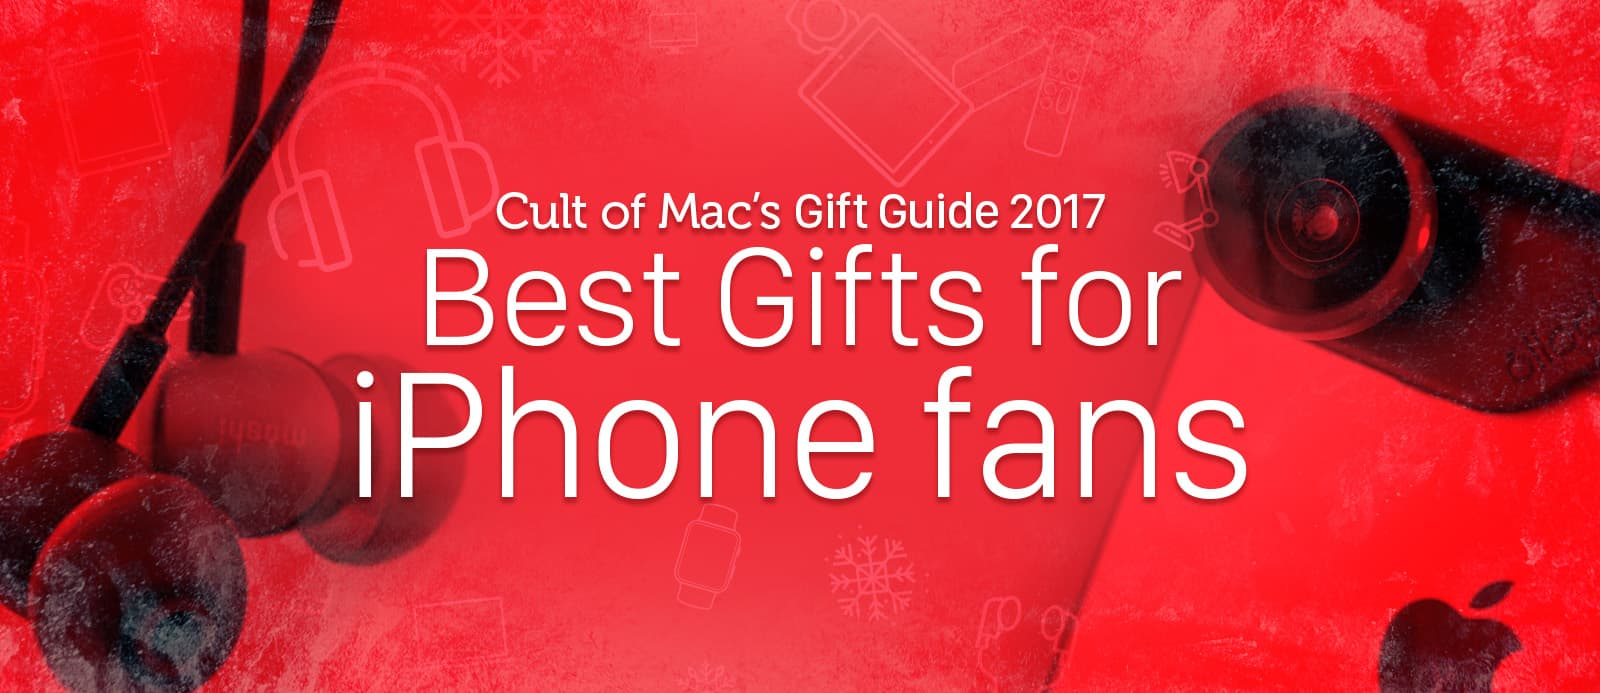 iPhone Gift Guide 2017